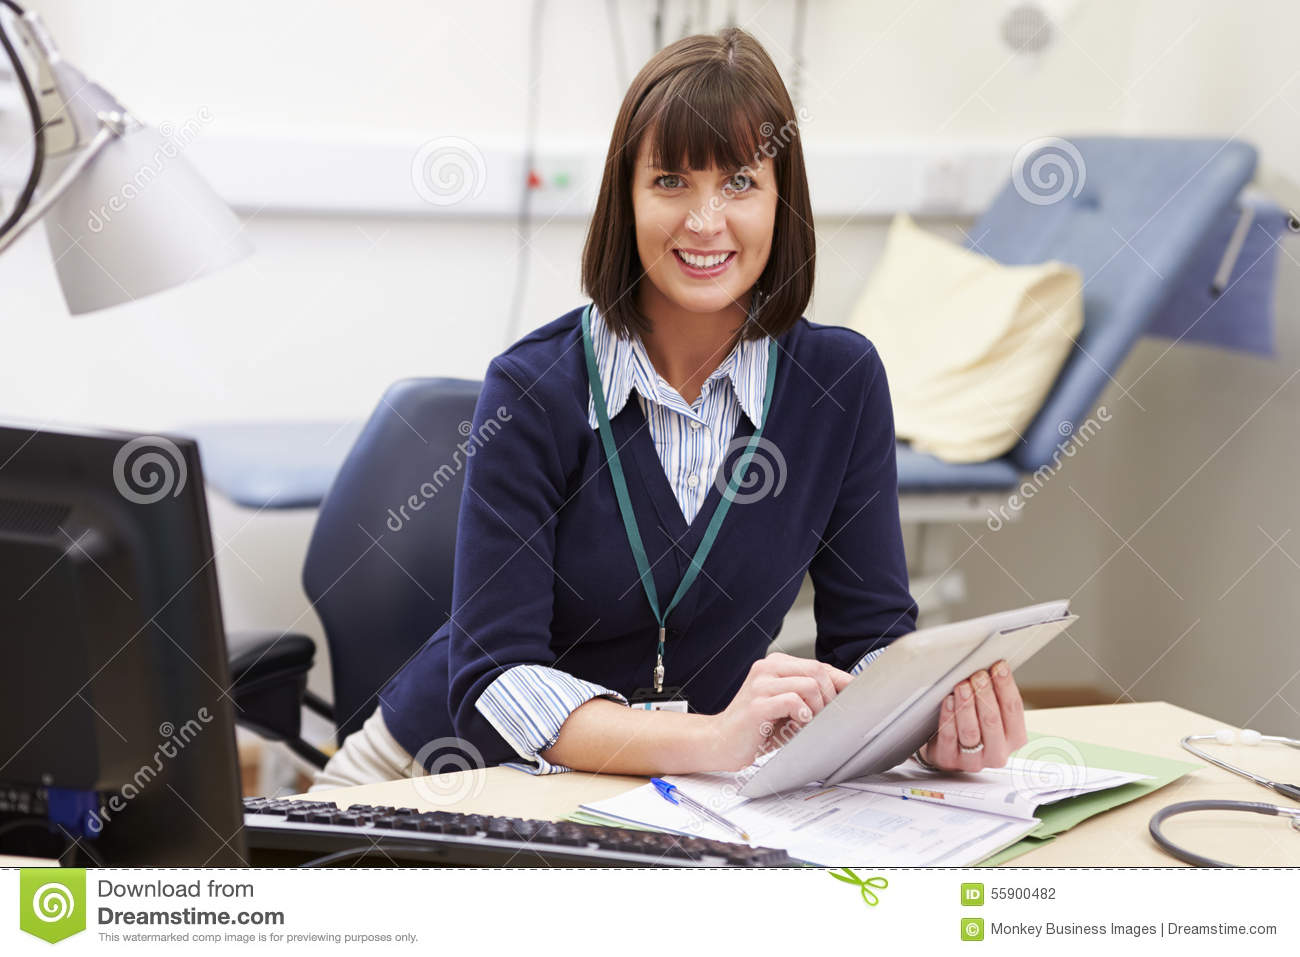 Female Consultant Using Digital Tablet At Desk In Office